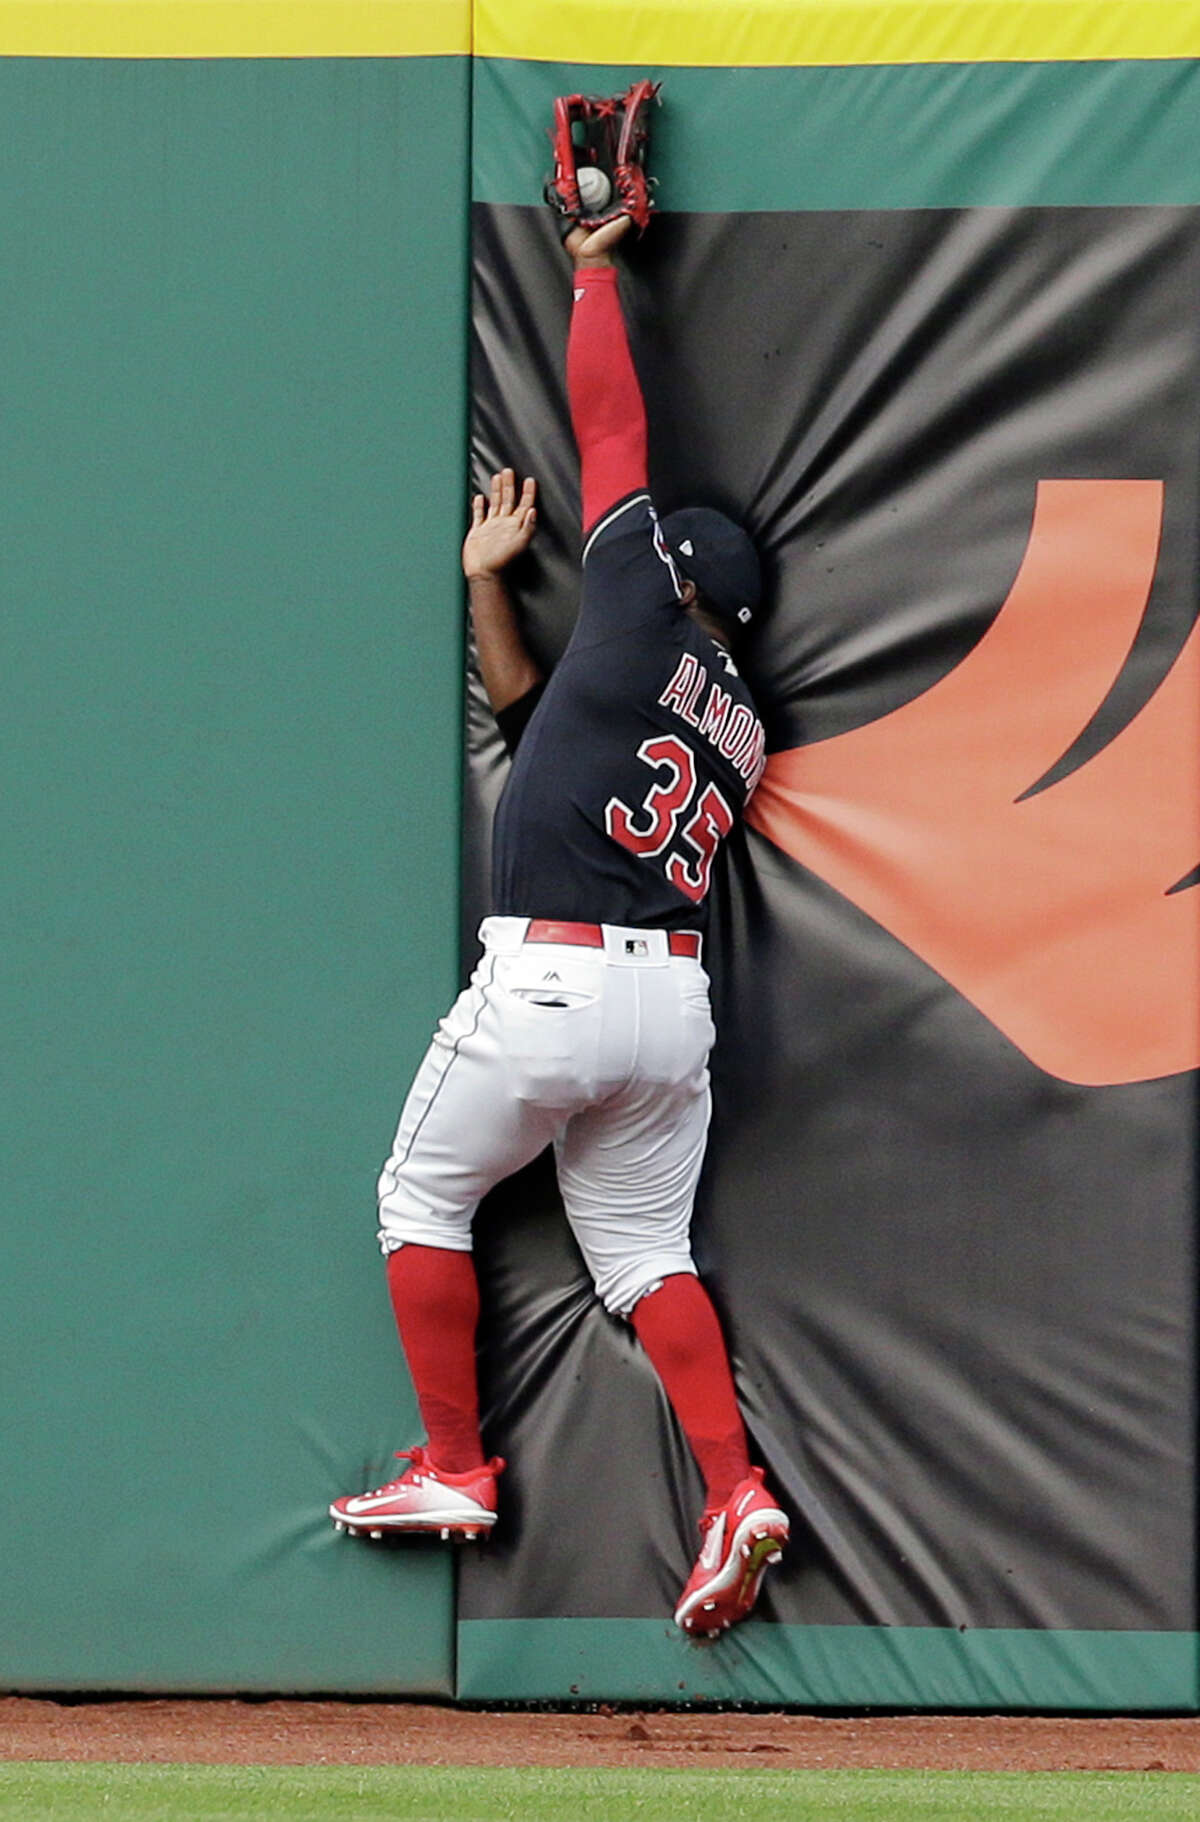 Cleveland Indians' Abraham Almonte reaches for a ball hit by Houston Astros' Yuli Gurriel during the first inning of a baseball game, Thursday, April 27, 2017, in Cleveland. Gurriel was out on the play. (AP Photo/Tony Dejak)